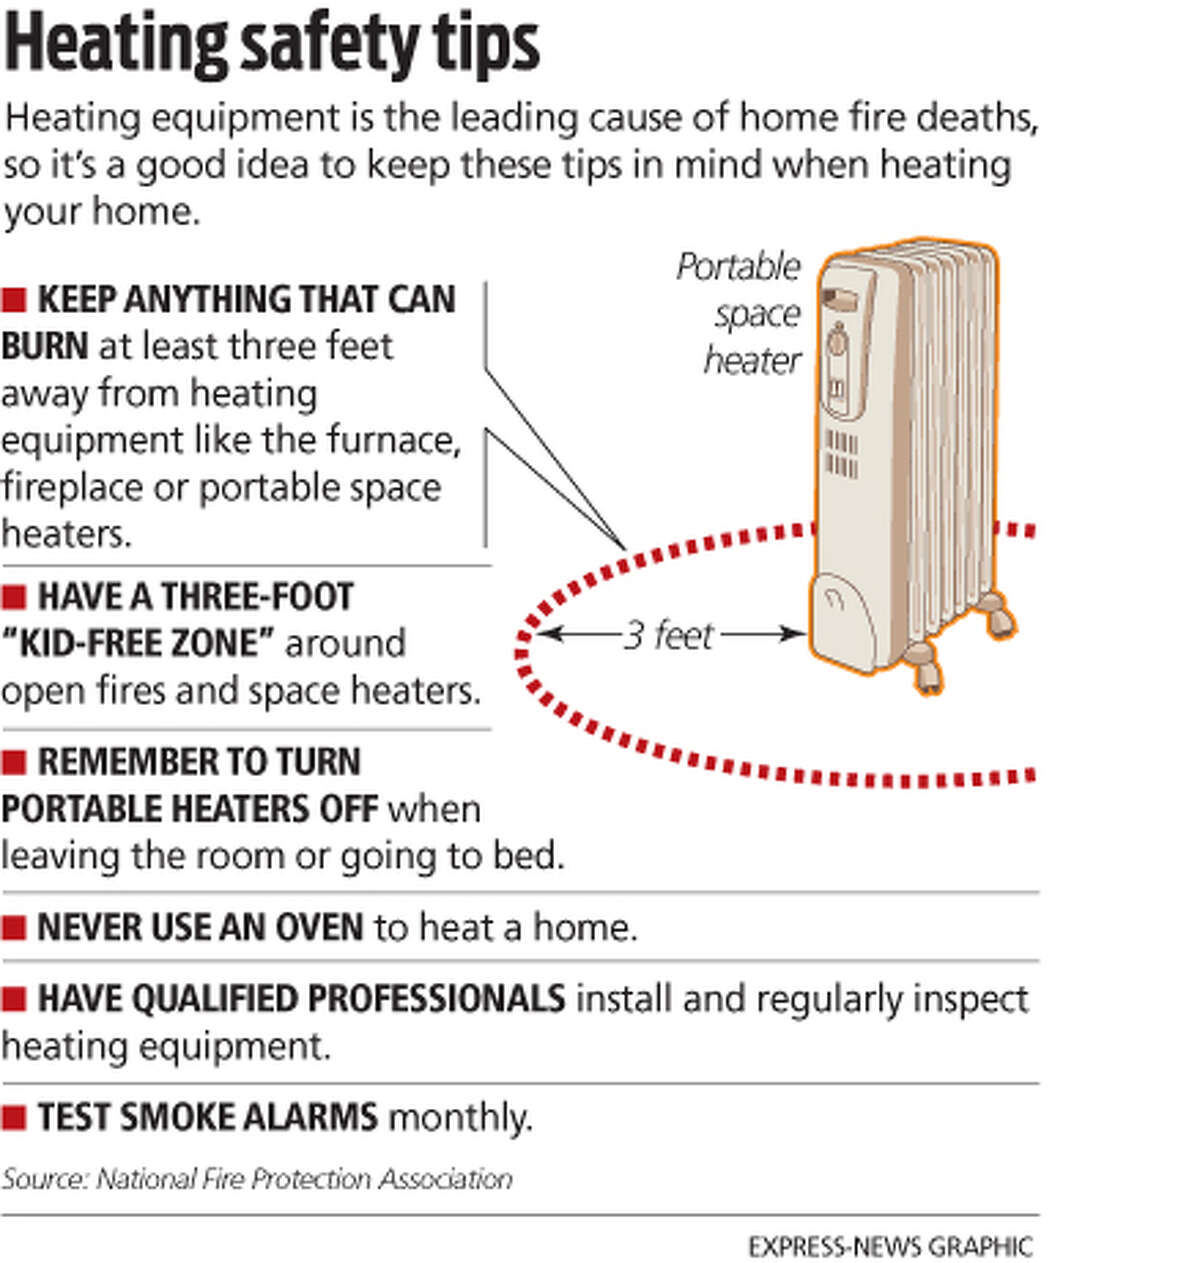 Heating safety tips Heating equipment is the leading cause of home fire deaths, so it's a good idea to keep these tips in mind when heating your home.